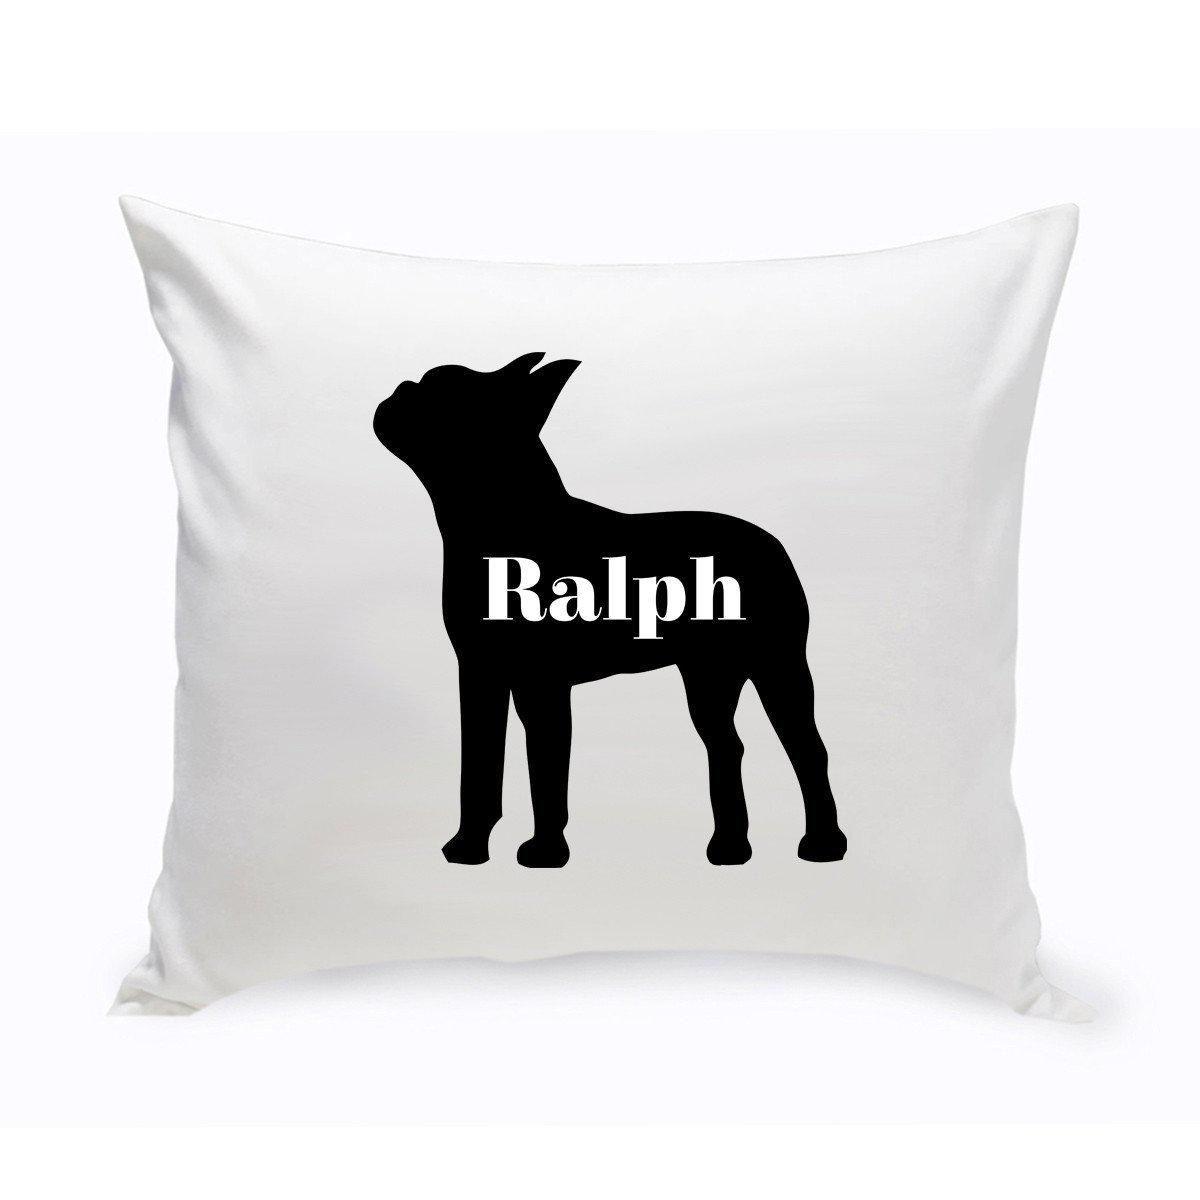 personalized throw pillow dog silhouette personalized dog gifts